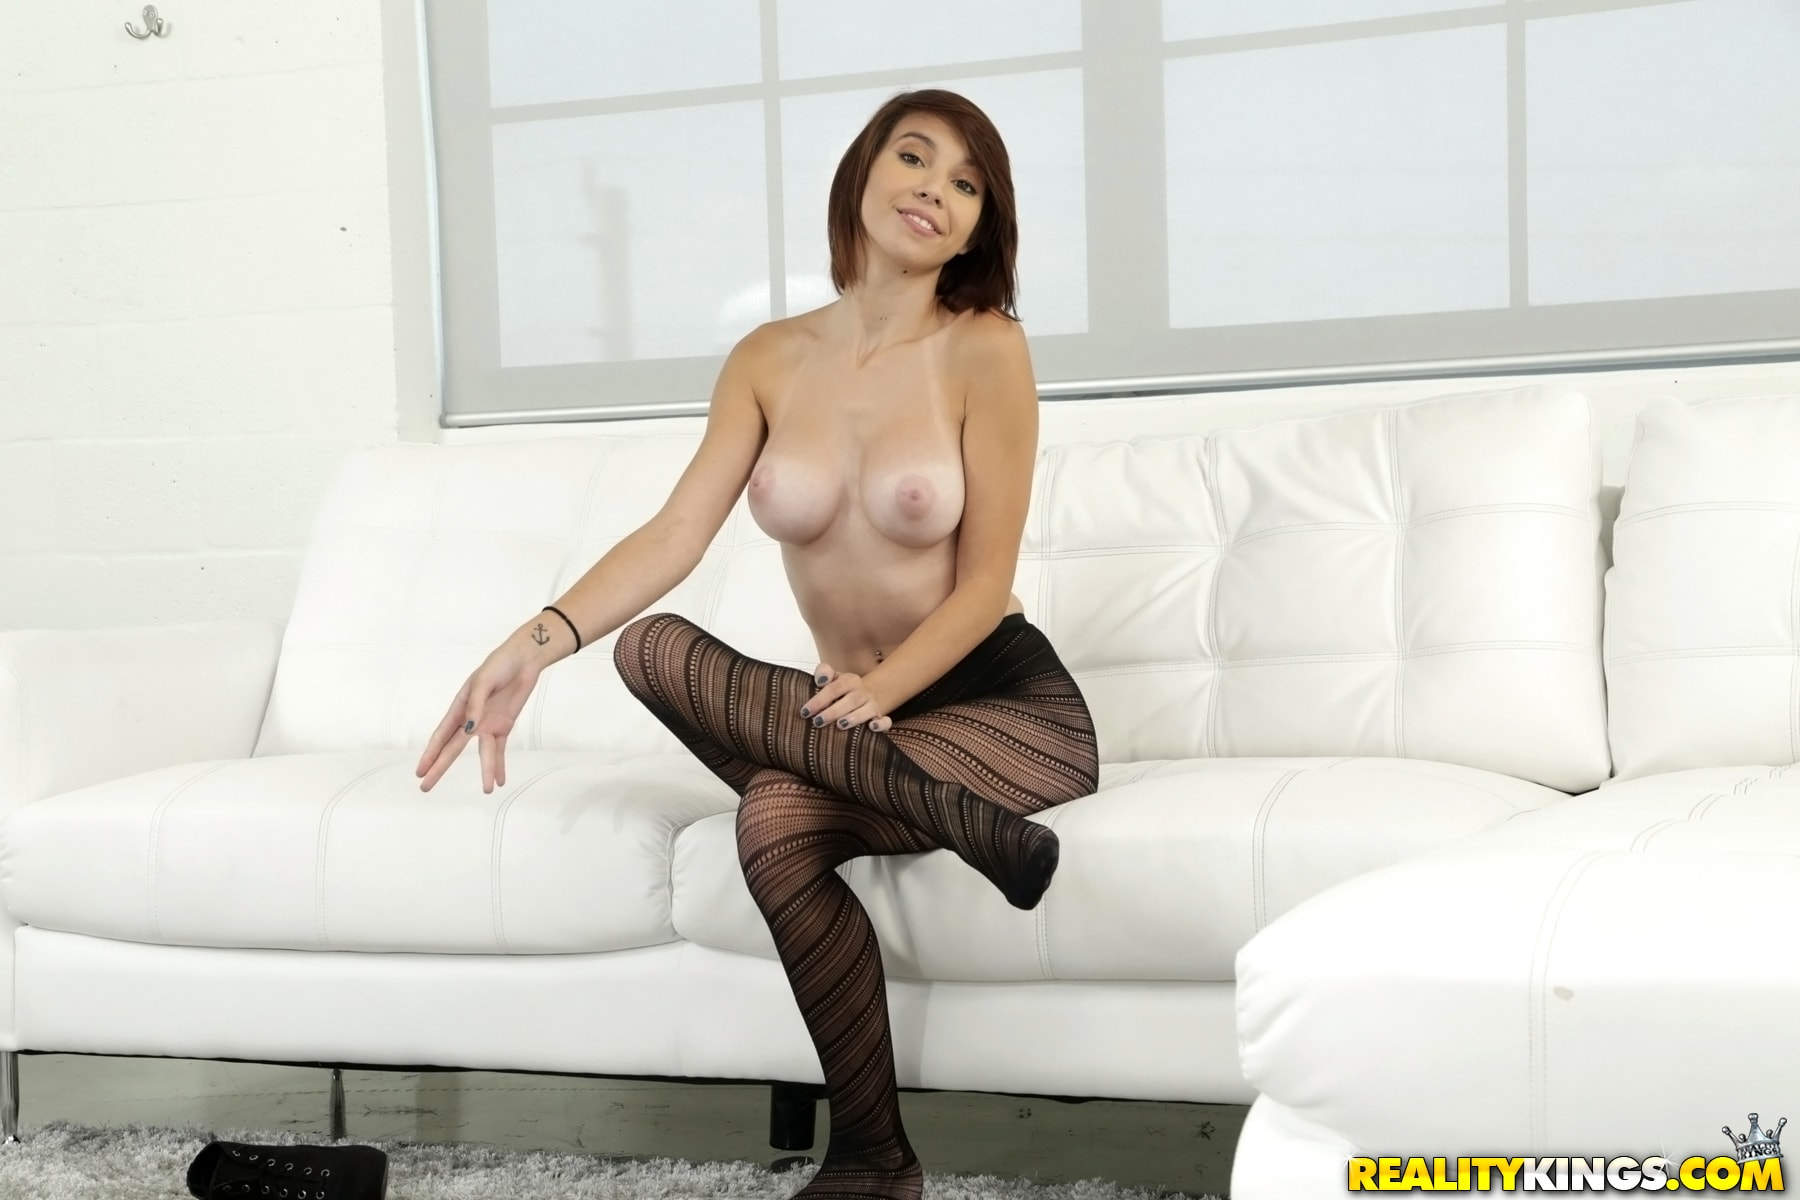 Reality Kings 'Tits and tights' starring Cece Capella (Photo 78)